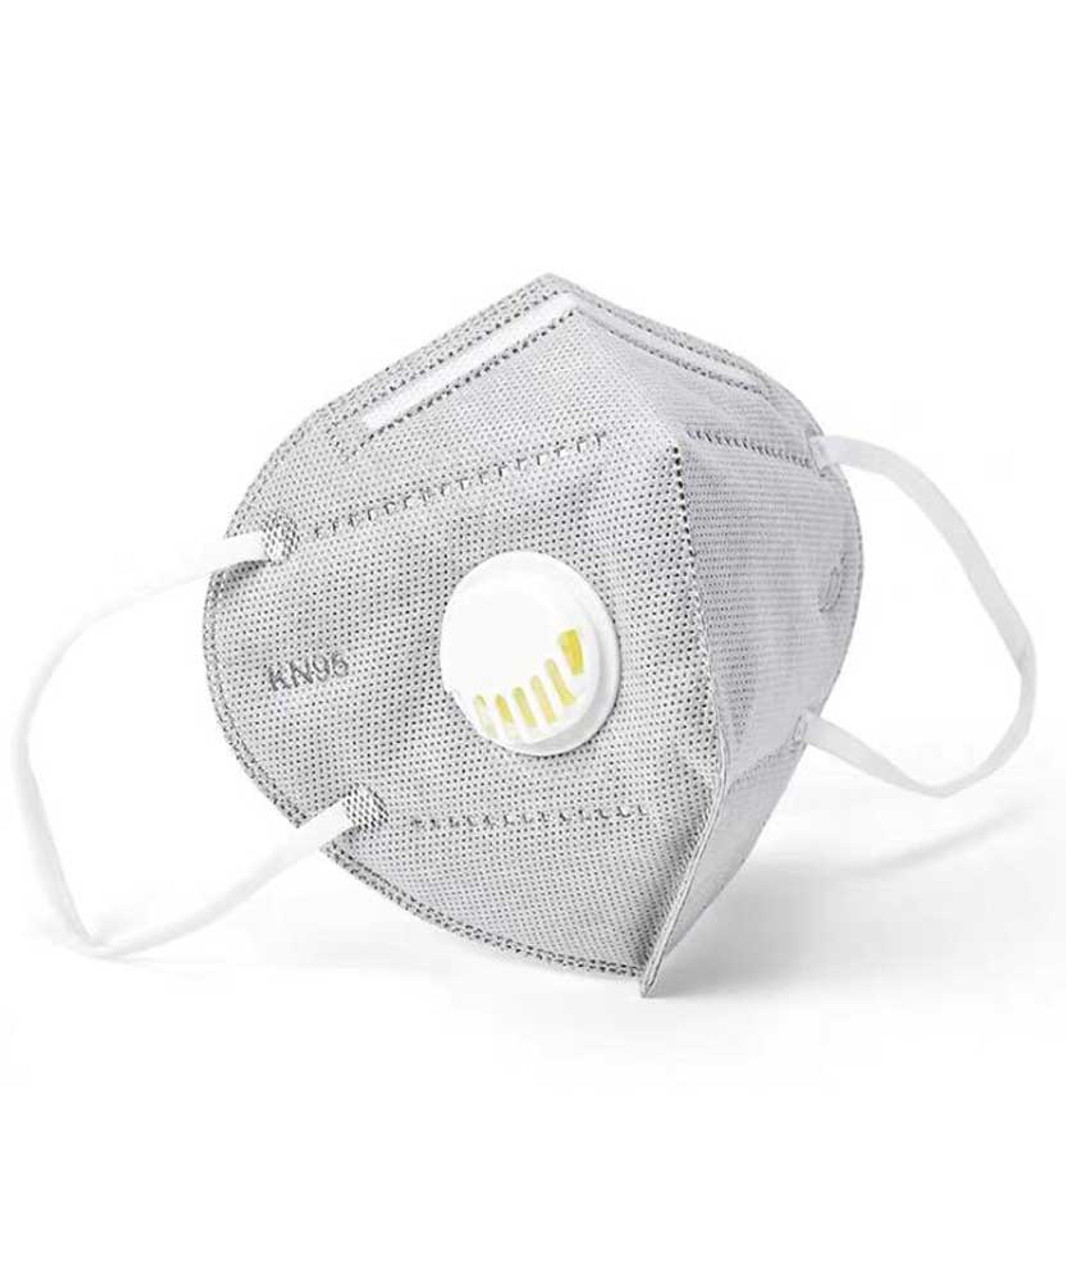 KN95 Non-powered air-purifying particle respirator face masks